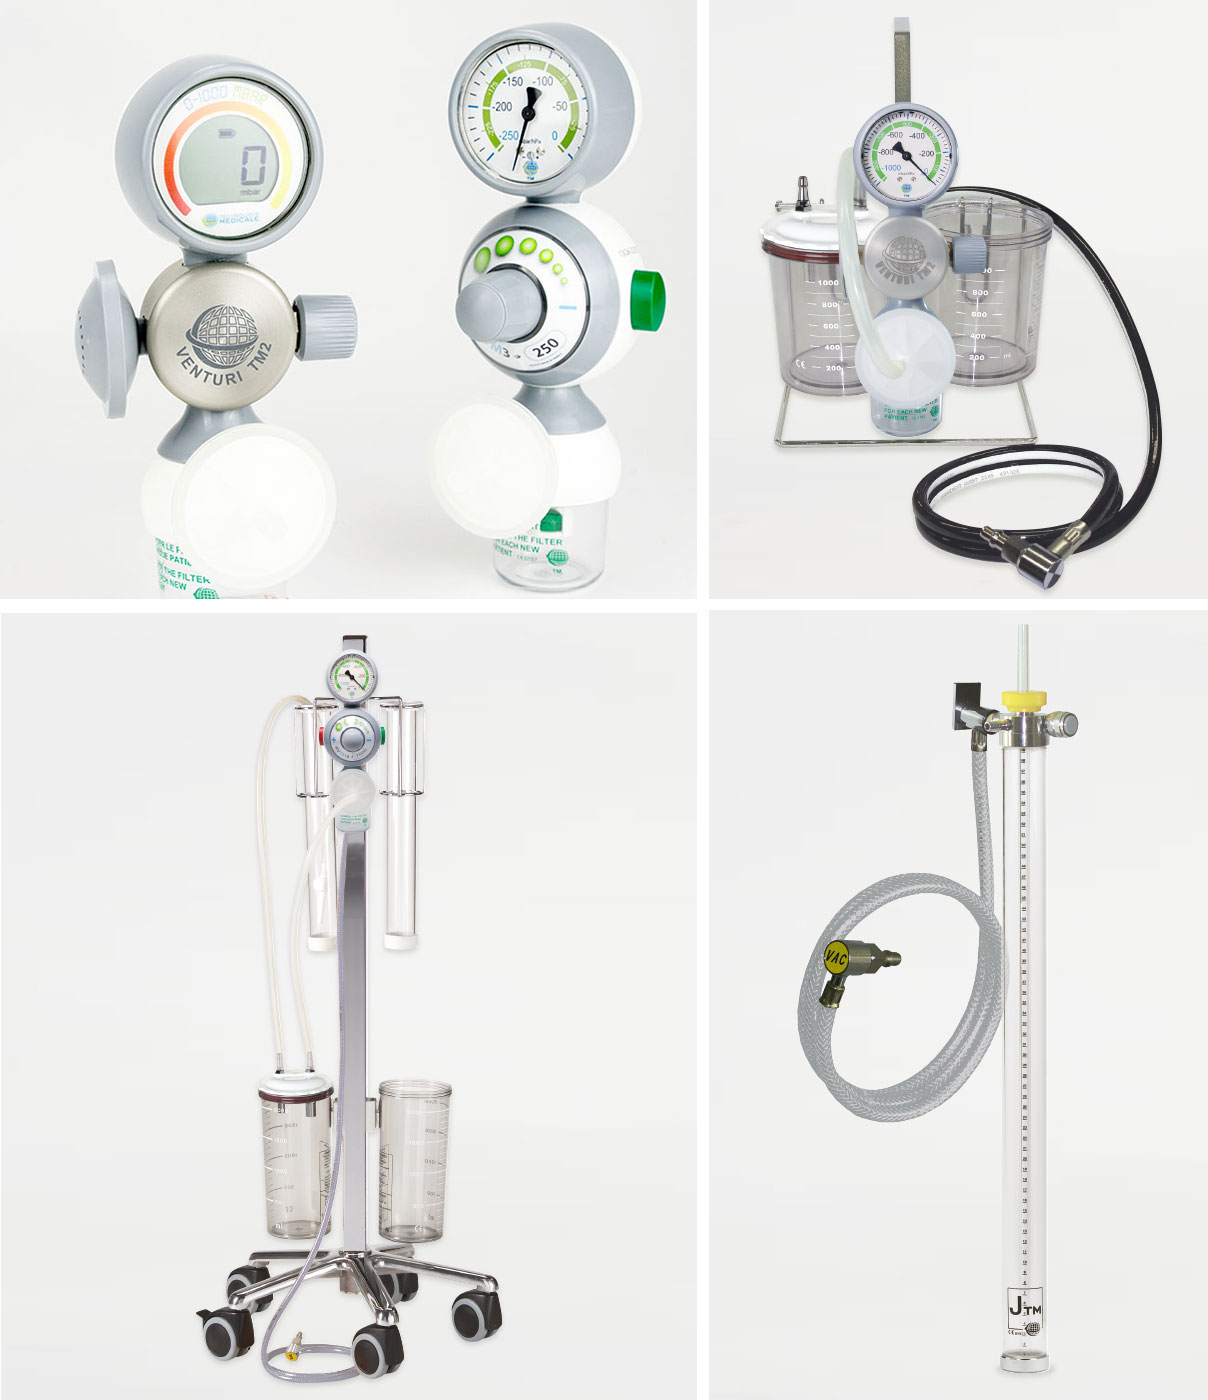 Pneumatic Suction Devices